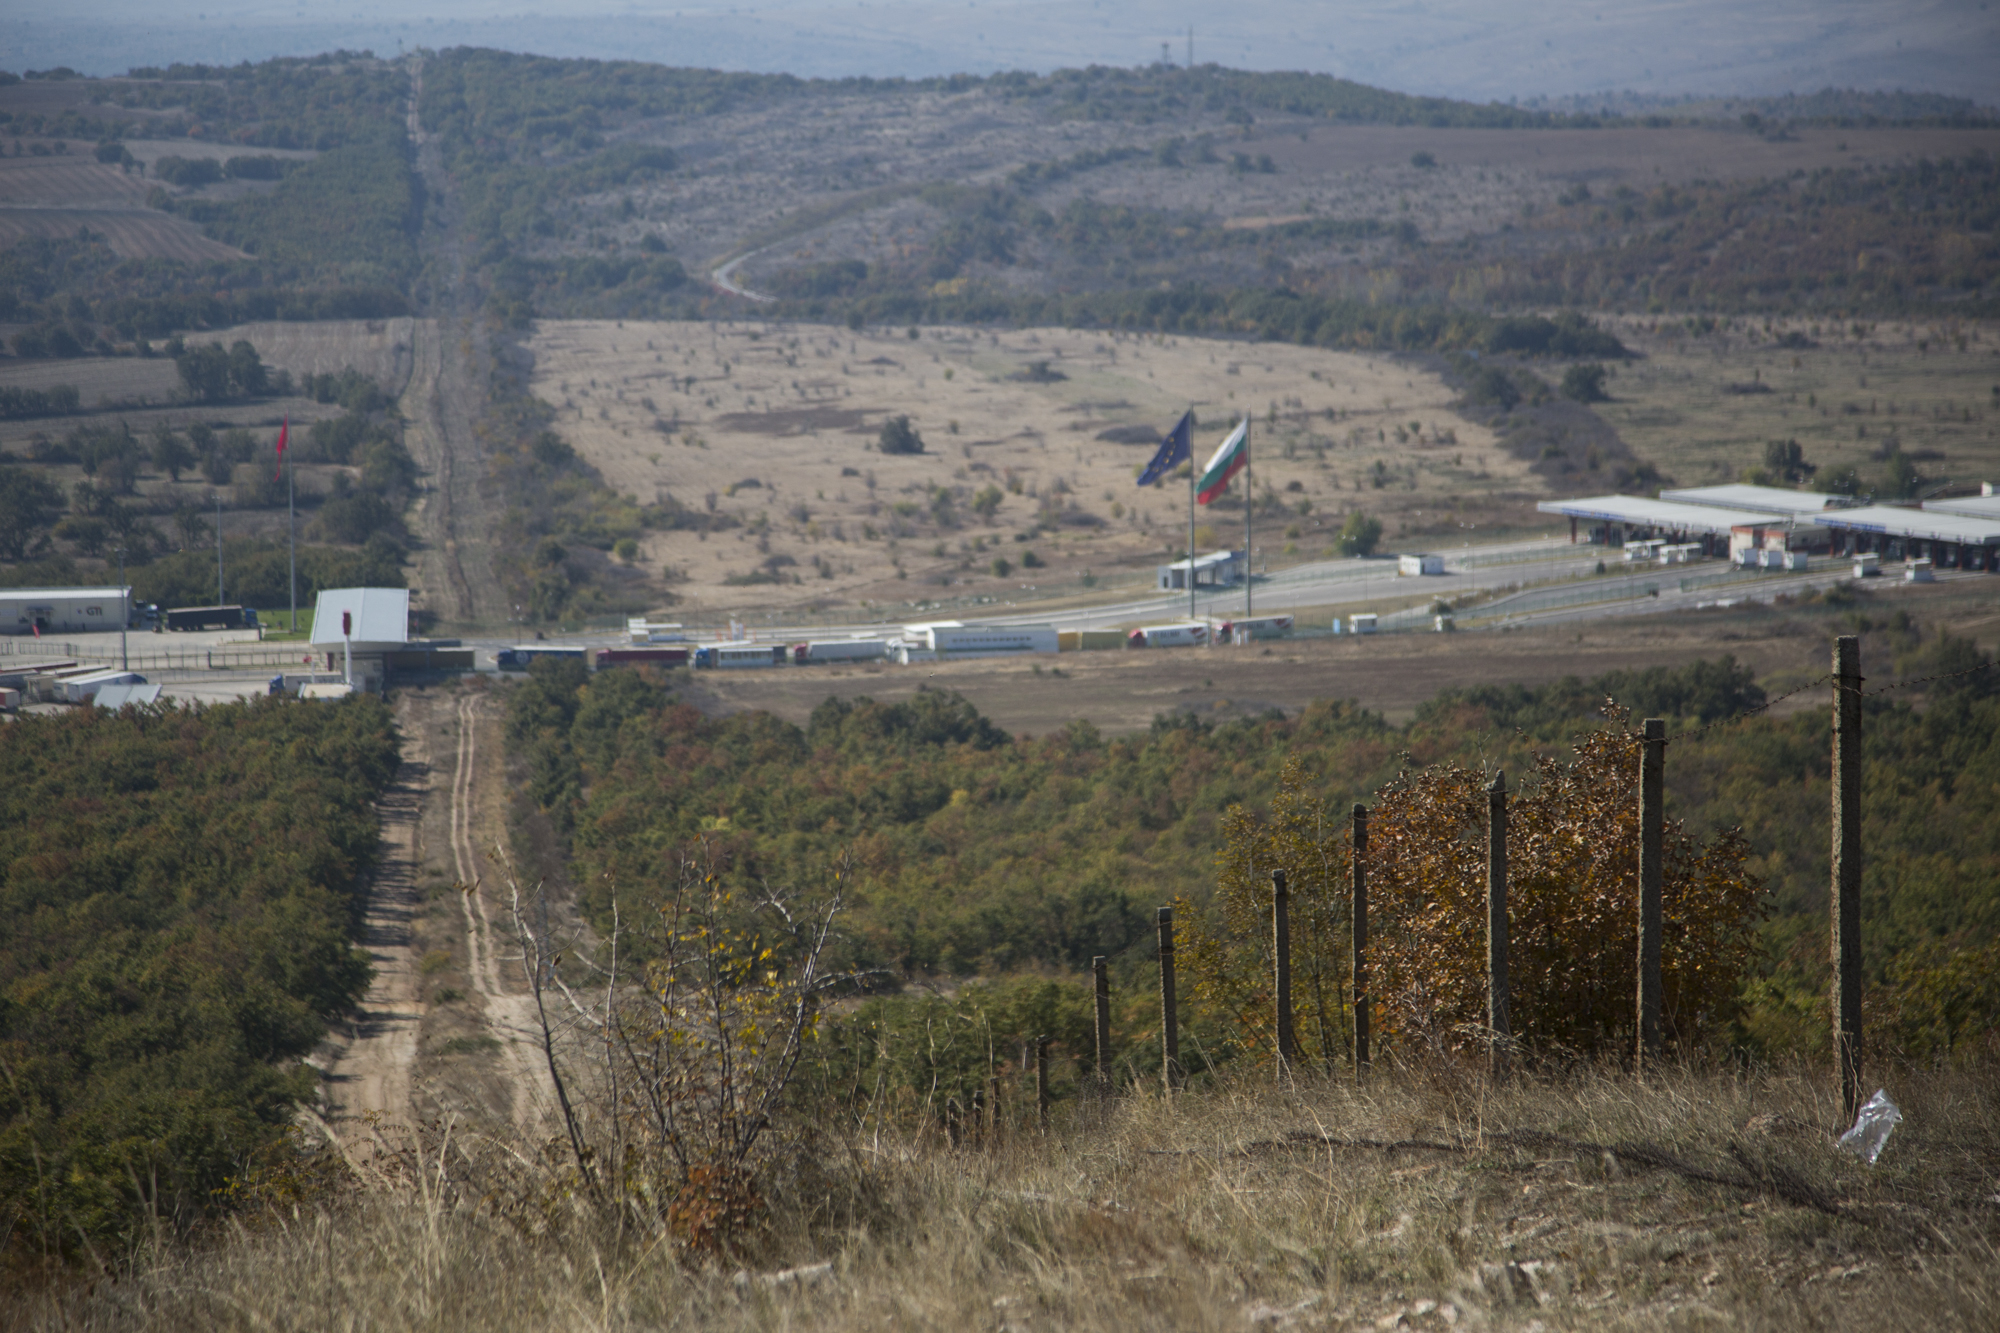 The border between Turkey and Bulgaria is marked by two rows of tracks and a communist-era fence, now in disrepair. It is monitored by security cameras and border police teams.